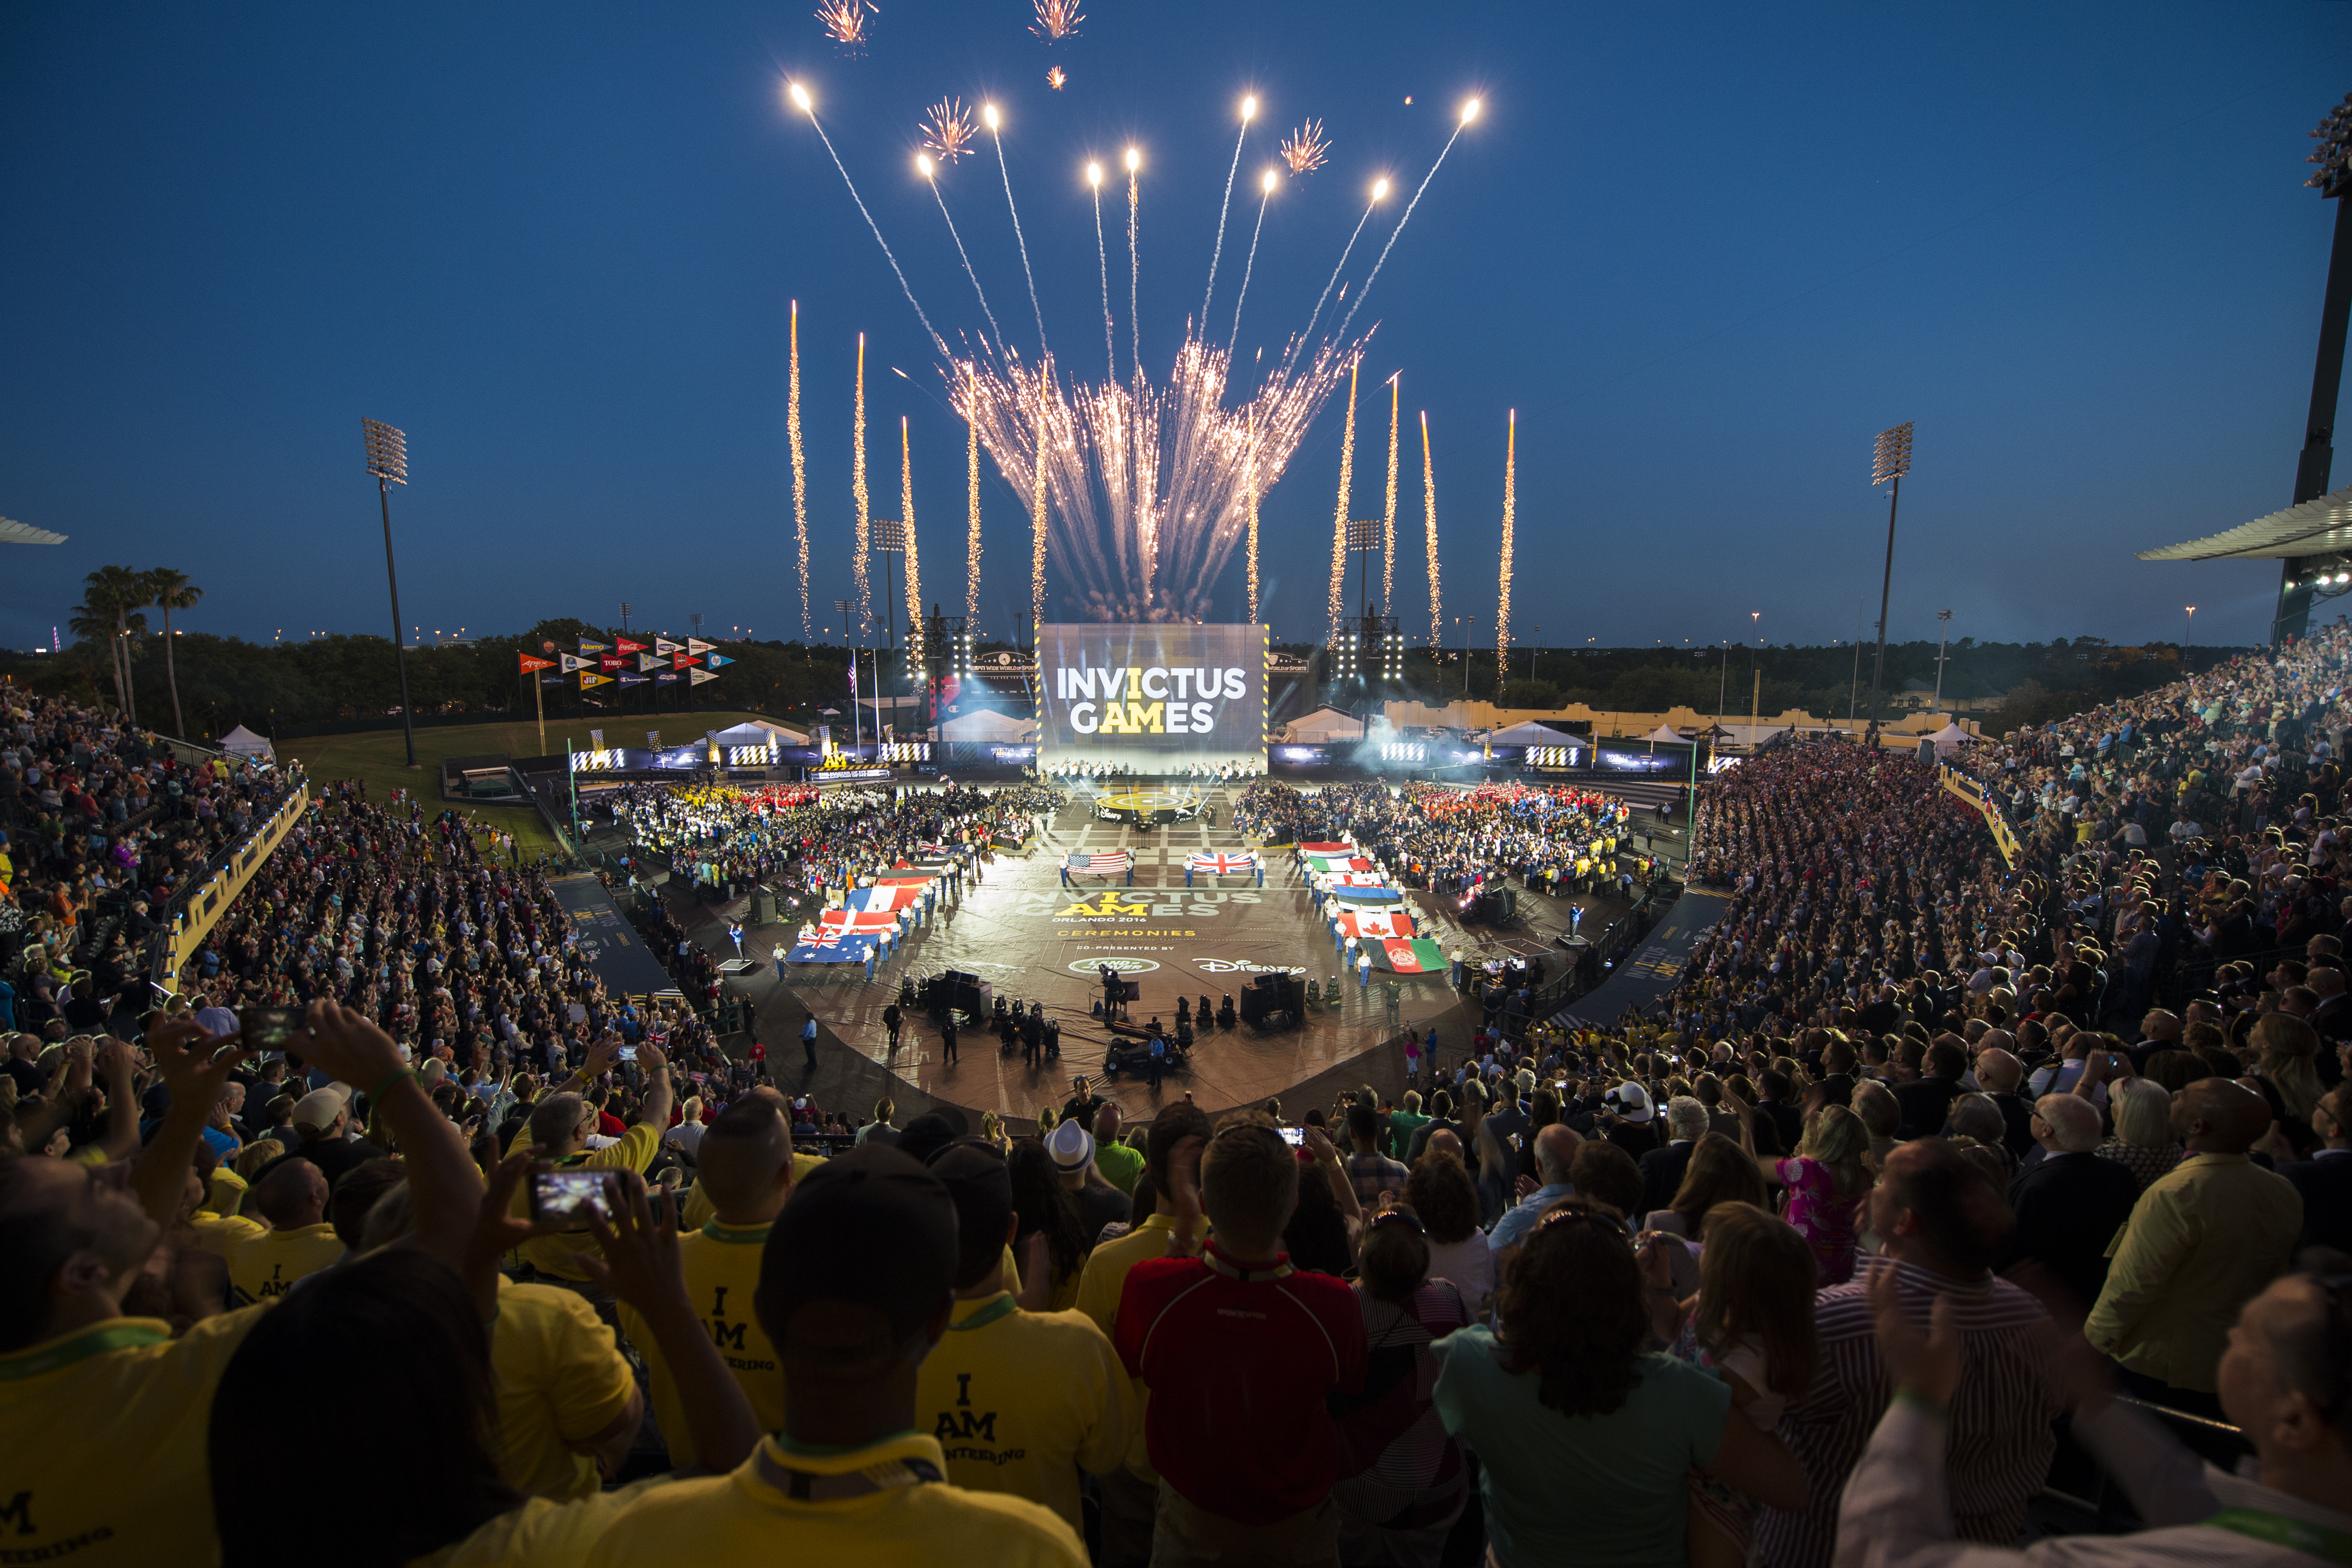 ESPN Provides Exclusive Coverage of 2016 Invictus Games